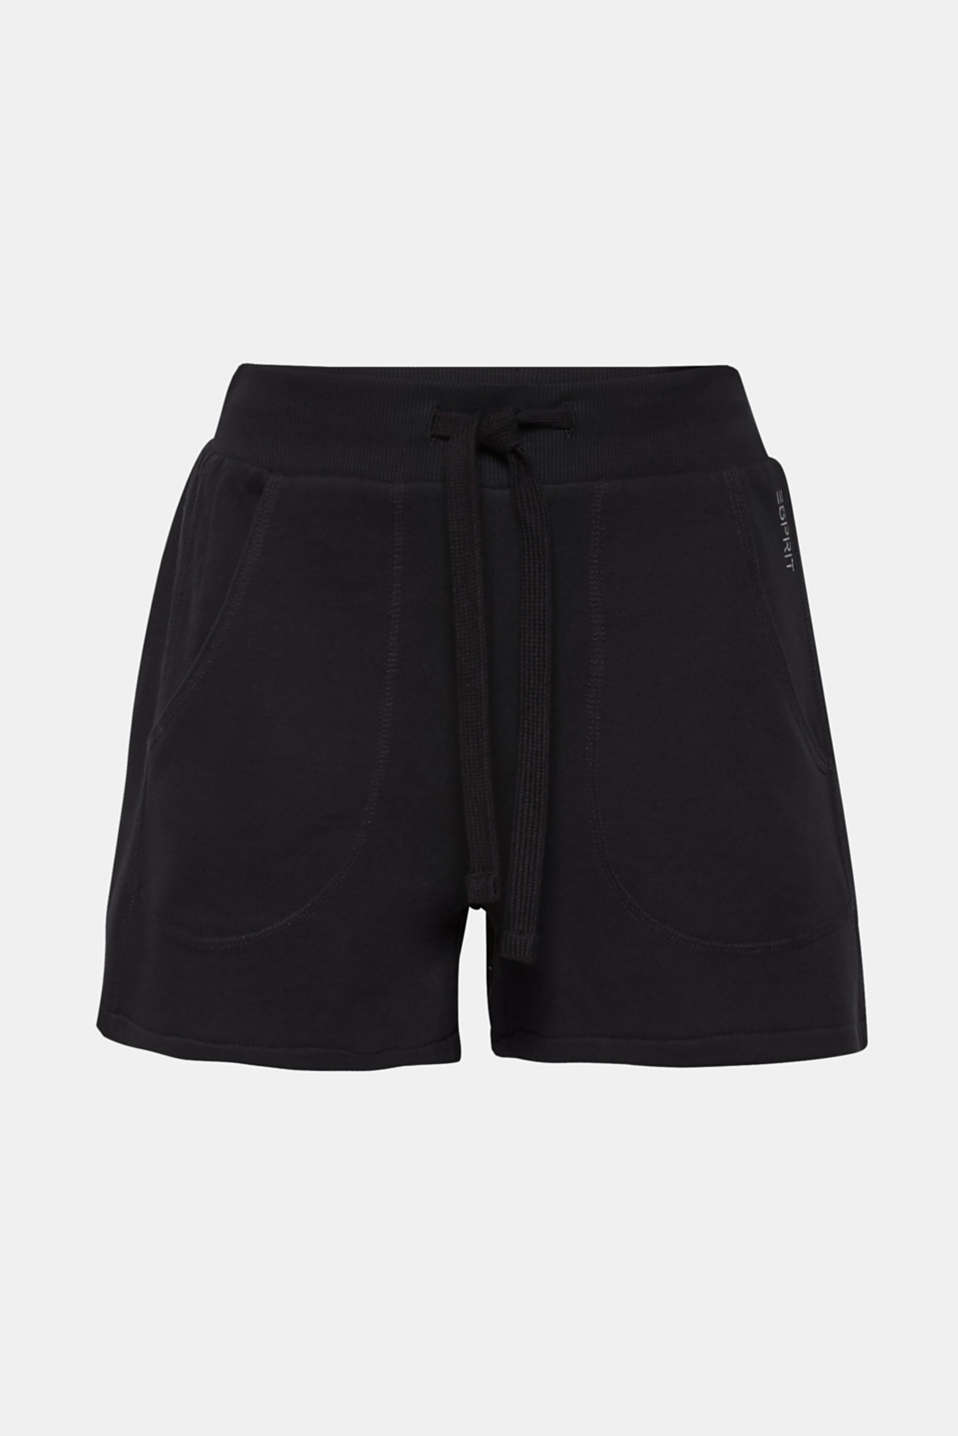 Shorts knitted, BLACK, detail image number 7